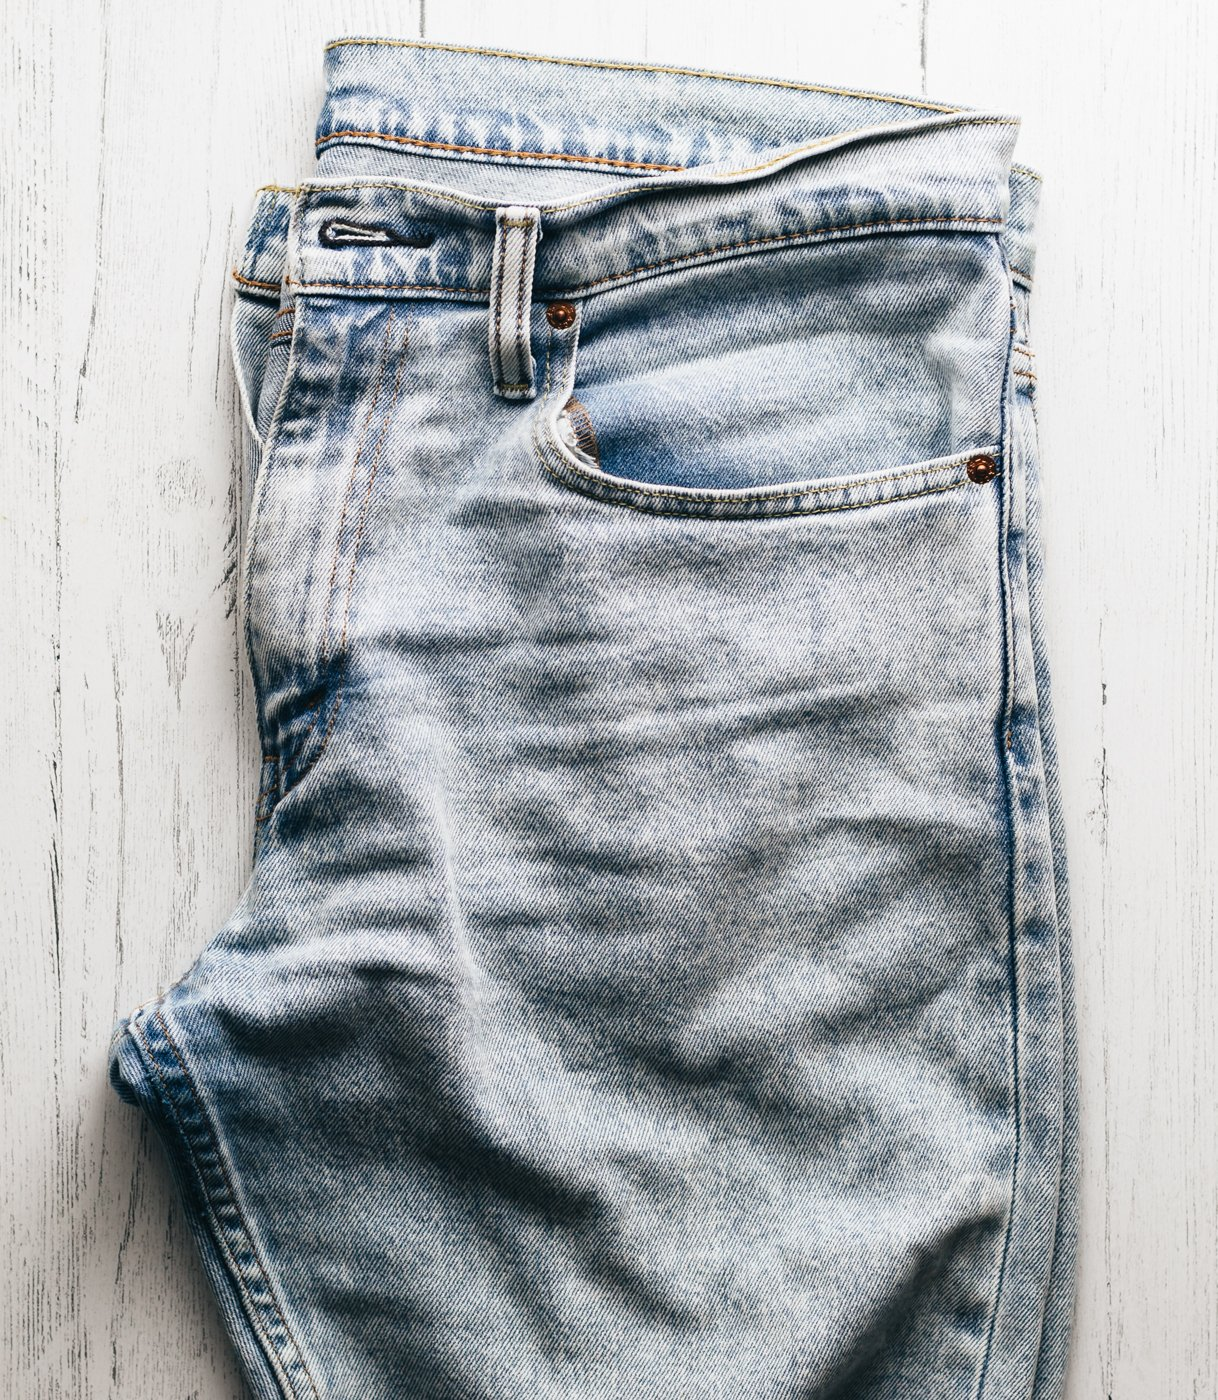 purex crystals, denim care tips, how to wash your jean, the kentucky gent, lifestyle blog